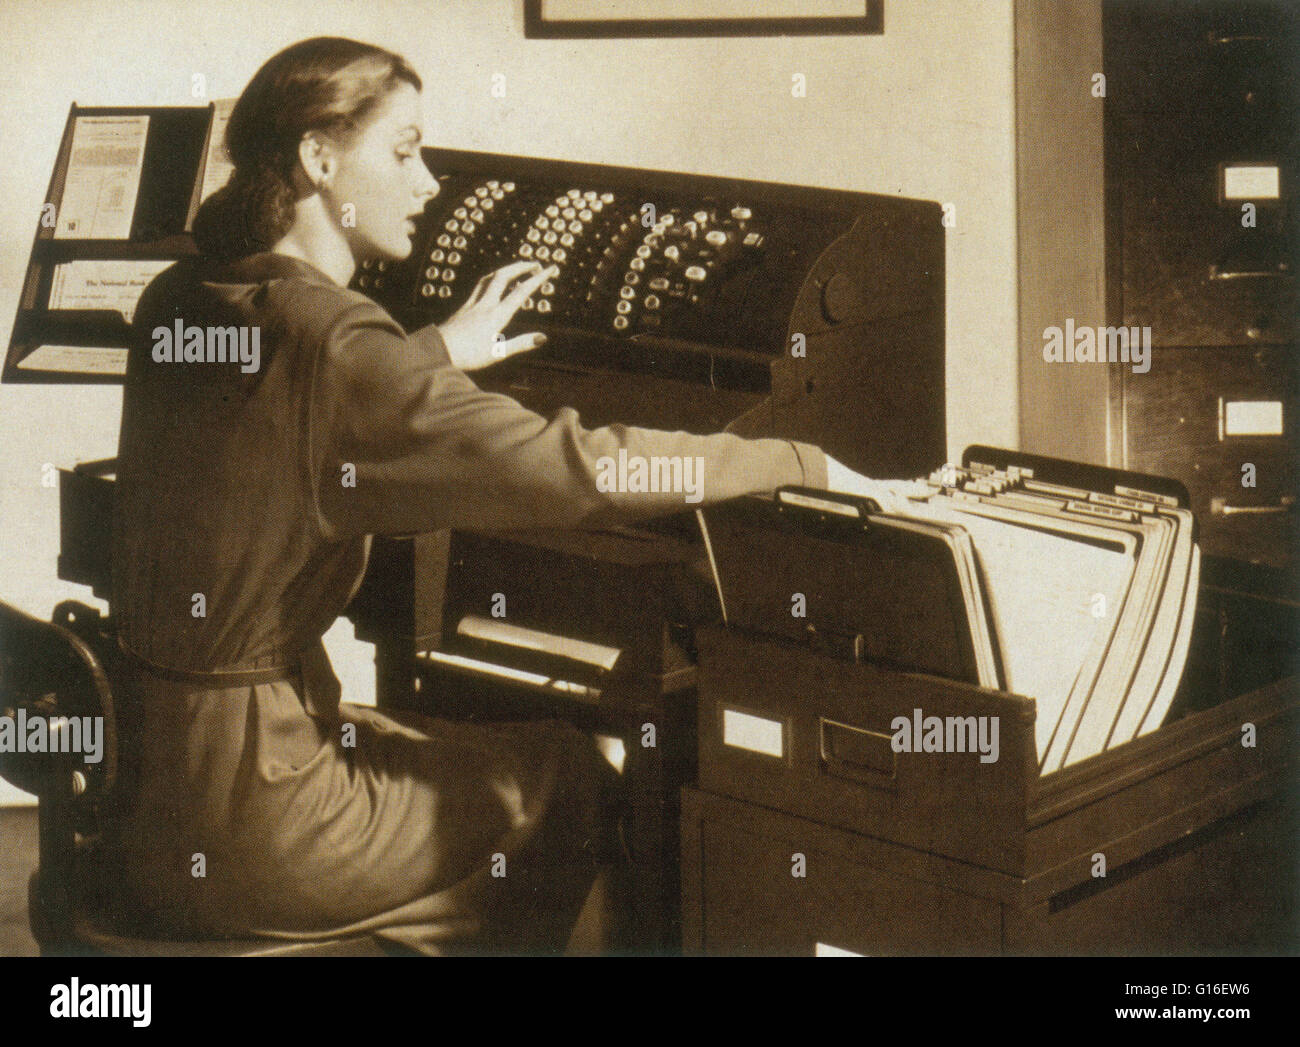 From the early 1900s through the 1960s, mechanical calculators dominated the desktop computing market. These devices - Stock Image